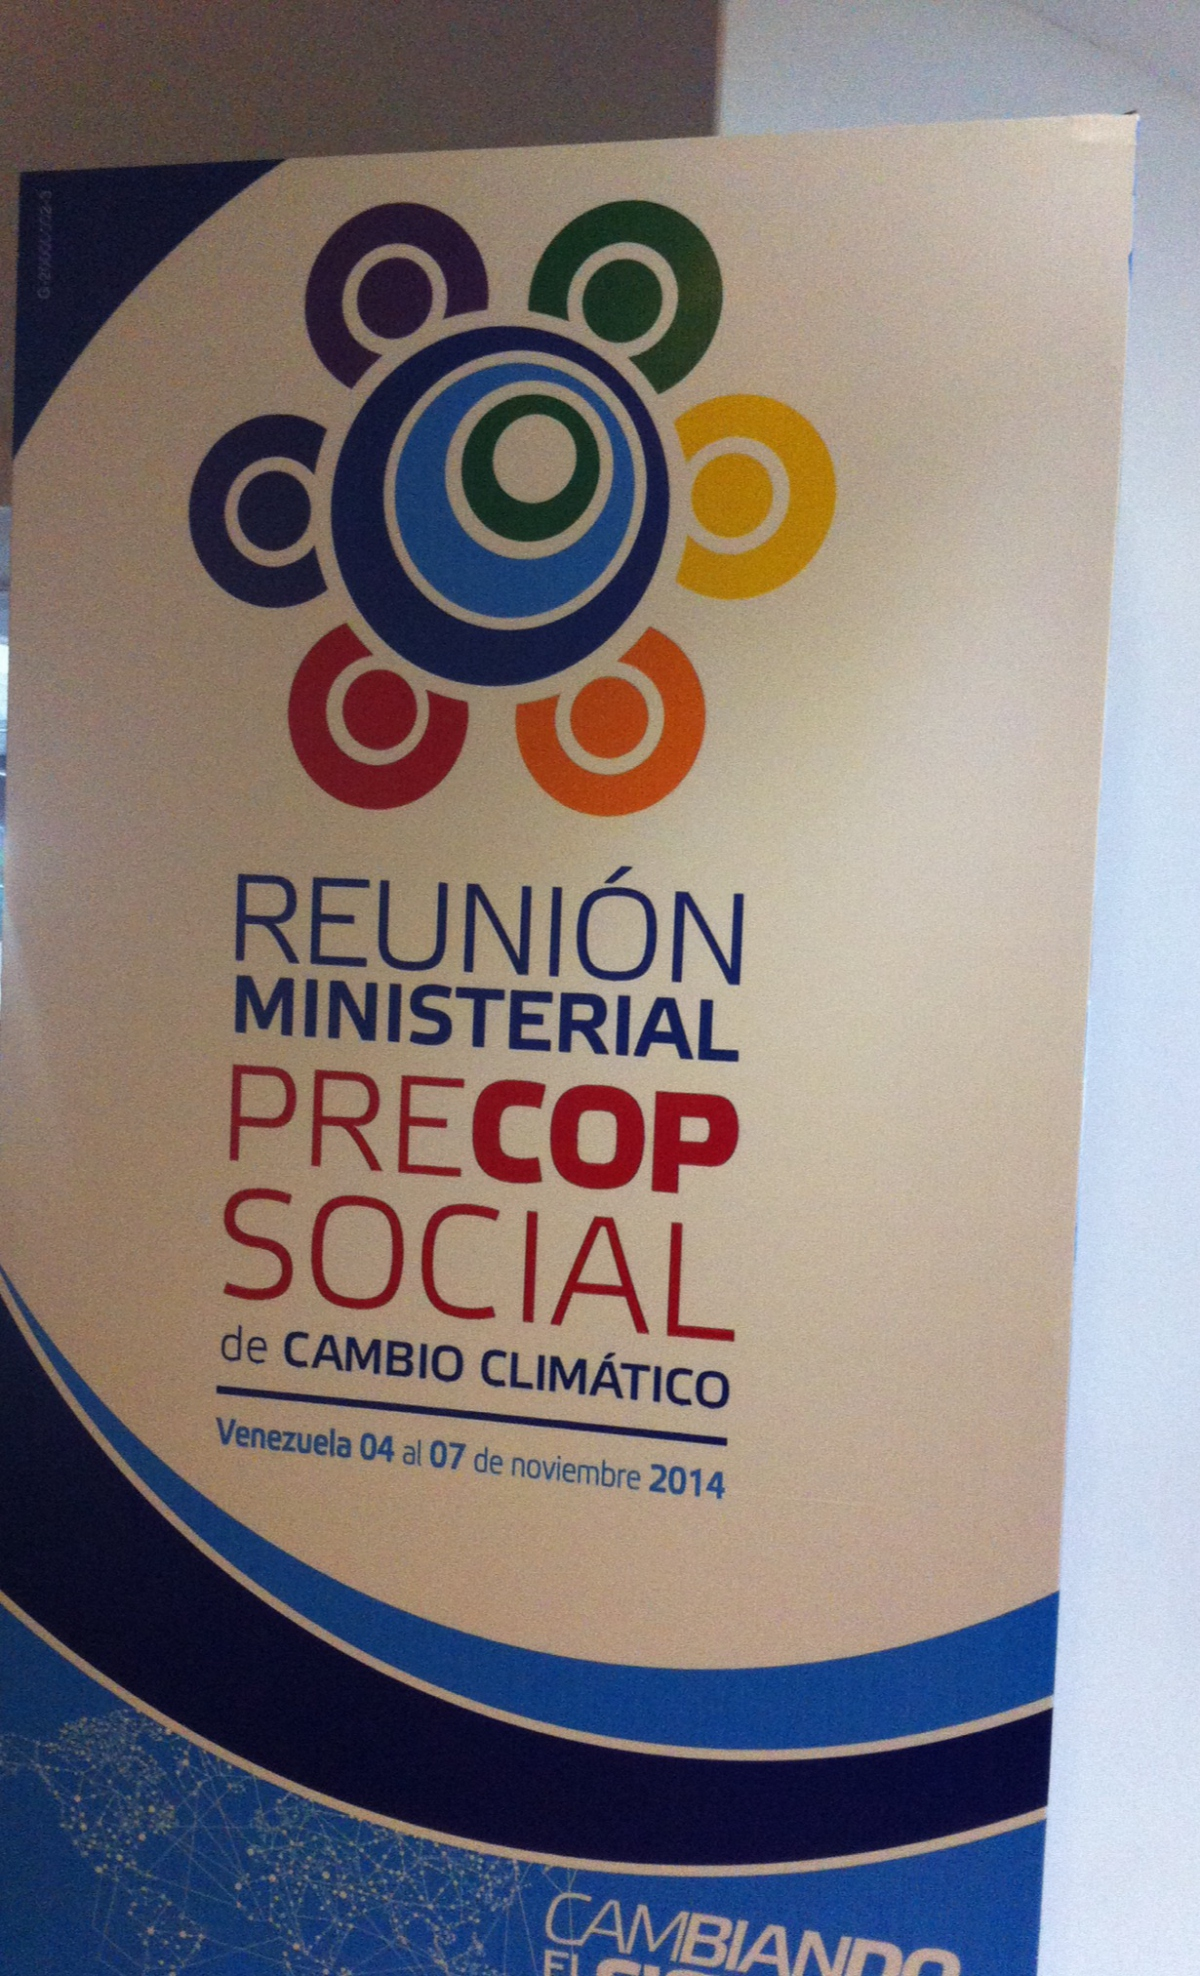 Representatives of civil society meet with government ministers to discuss climate change policy at the second social PreCOP meeting held on Margarita Island in Venezuela, November 4-7.  (Cory Fischer-Hoffman, Venezuelanalysis.com)